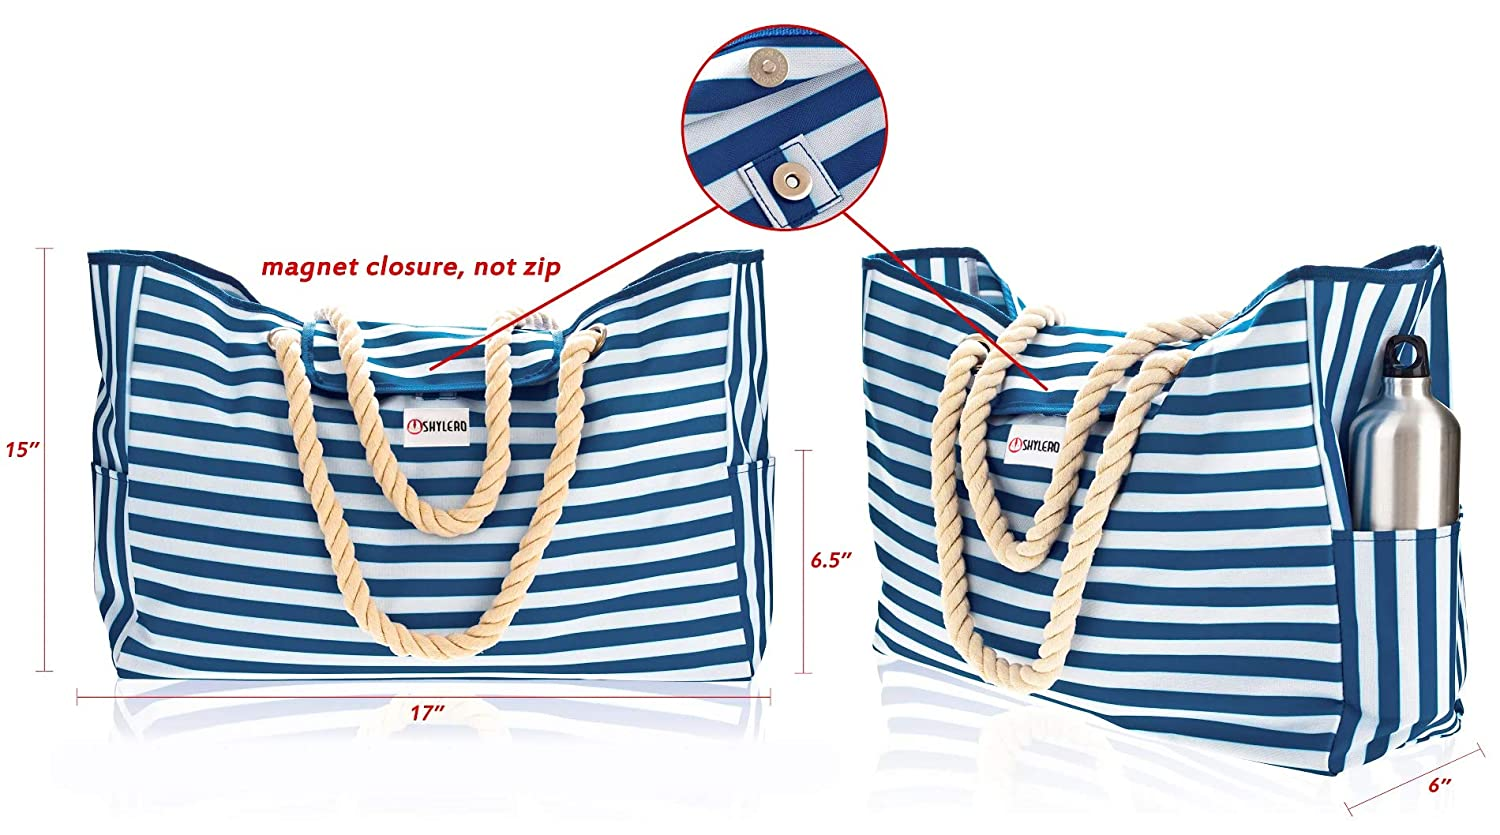 Top Magnet Clasp 100/% Waterproof Beach Bag XL L17xH15xW6 w Cotton Rope Handles Blue Stripes Shoulder Beach Tote Includes Phone Case Built-In Key Holder and Bottle Opener Two Outside Pockets